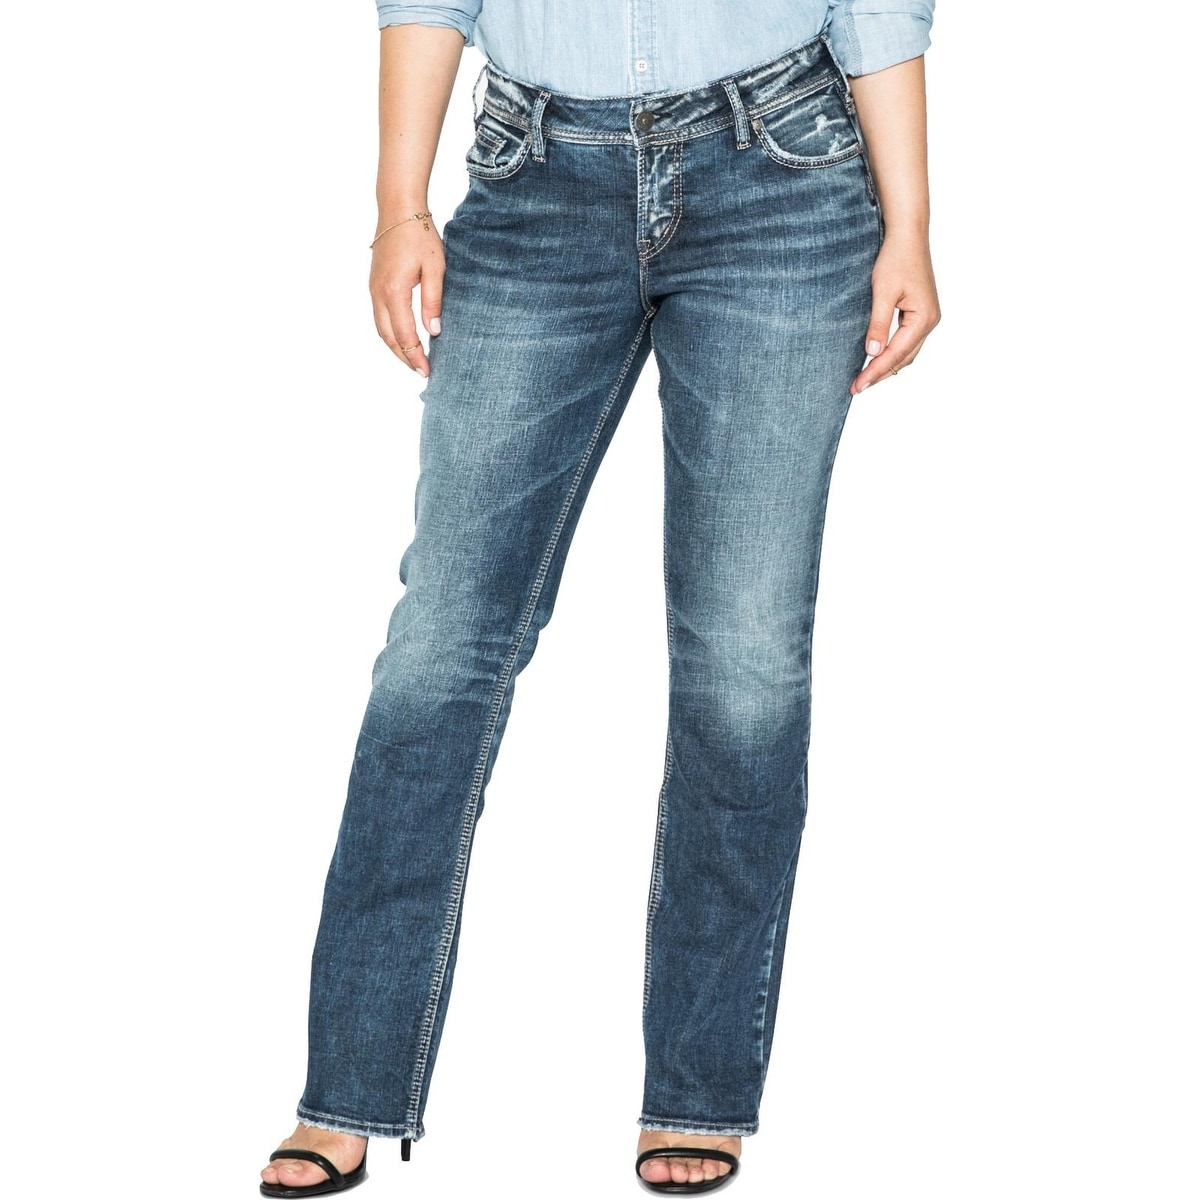 4e025720eb3d3 Shop Silver Jeans Co. Womens Plus Suki Slim Bootcut Jeans Curvy Fit Indigo  Wash - 18 - Free Shipping On Orders Over  45 - Overstock.com - 27193586